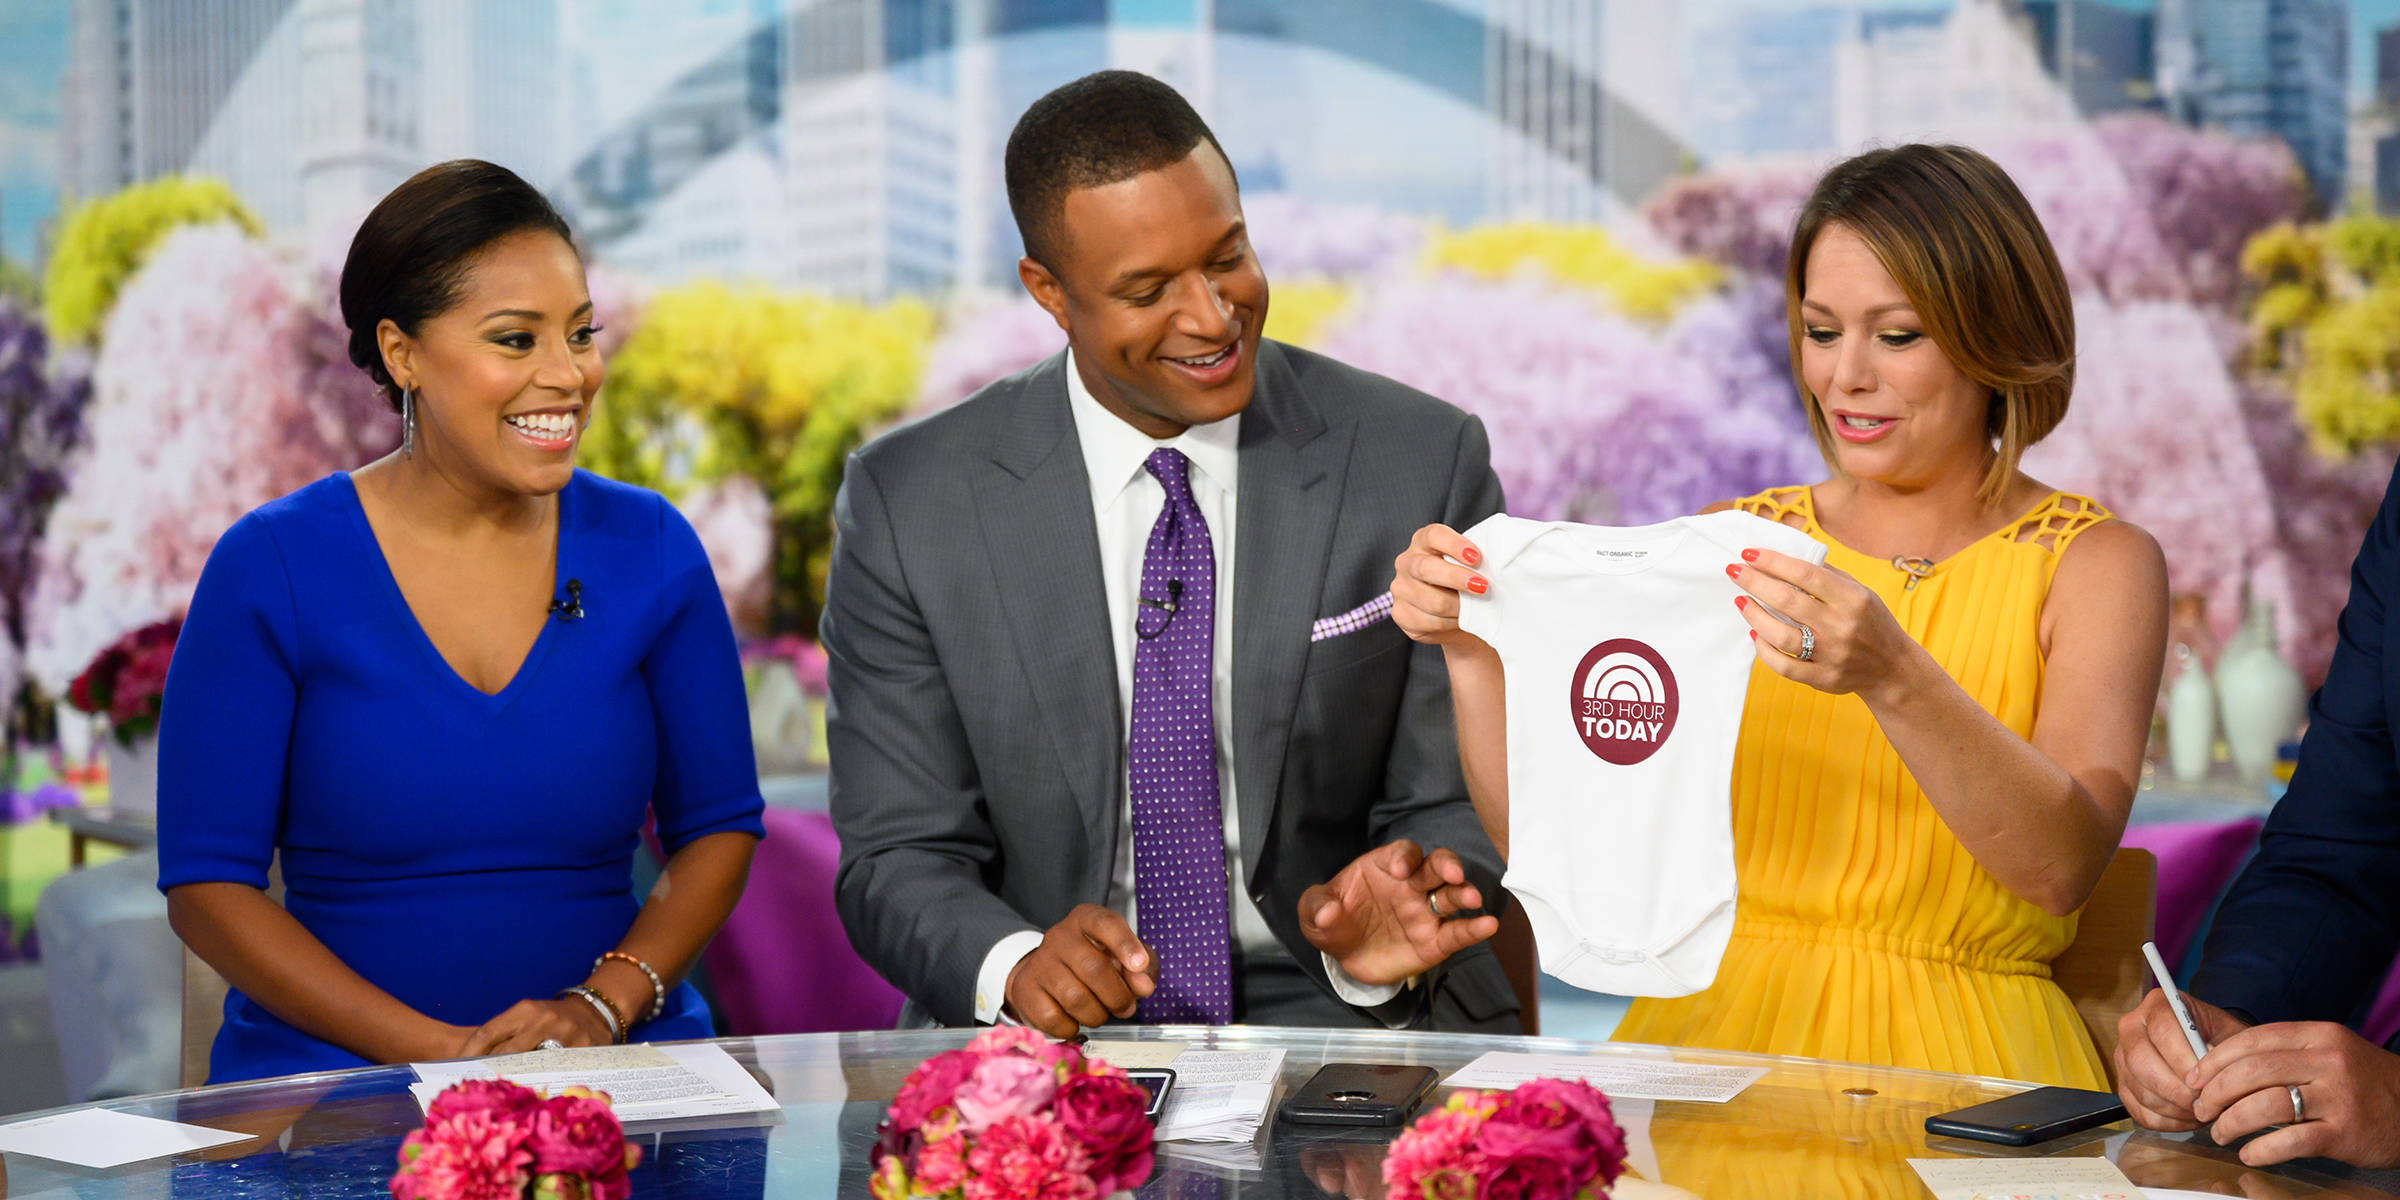 TODAY anchors offer second kid parenting tips to Dylan Dreyer